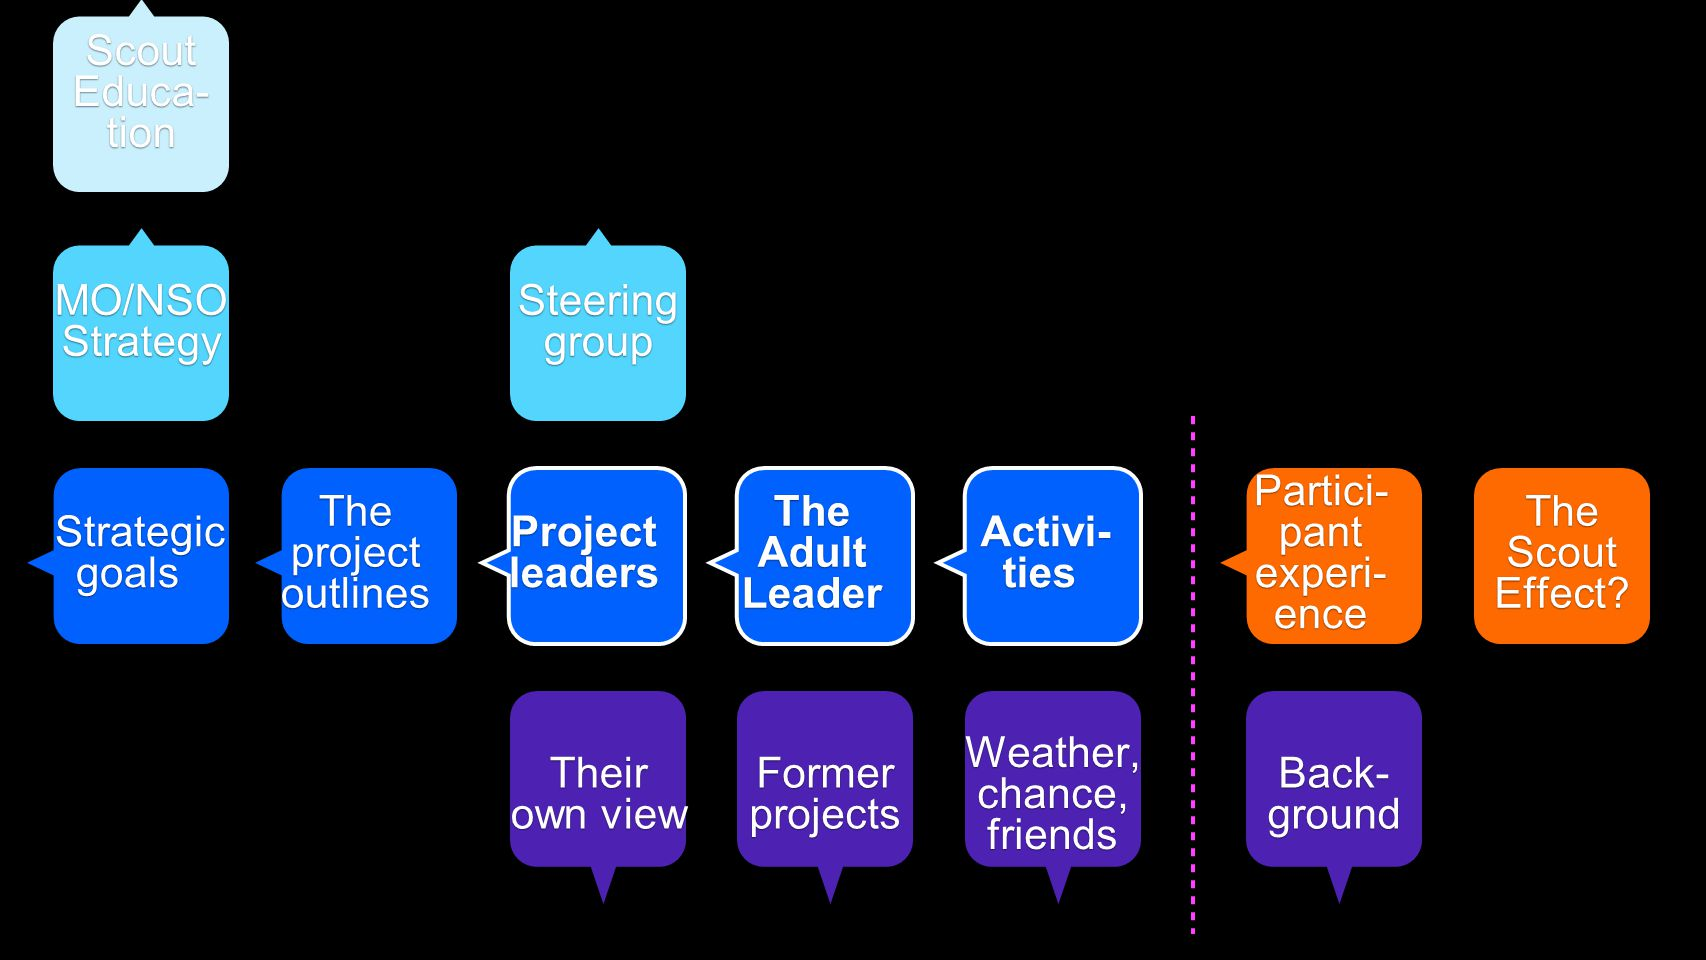 The project outlines Their own view Strategic goals Strategic goals Steering group MO/NSO Strategy Former projects Back- ground Weather, chance, friends The Scout Effect.